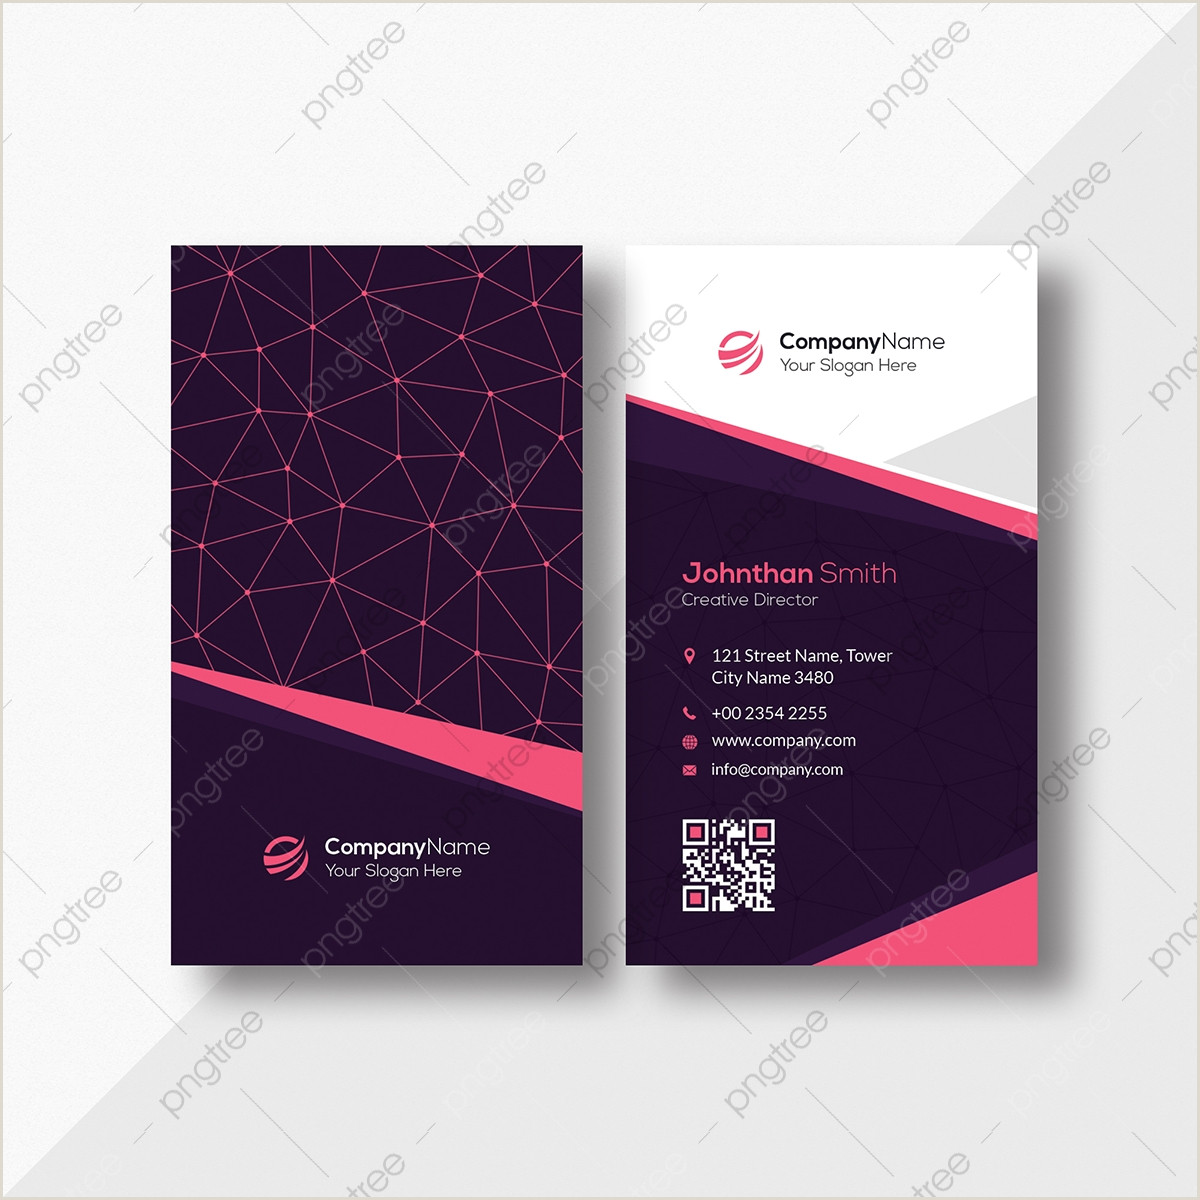 Network Business Card Templates Network Business Card Template For Free Download On Tree